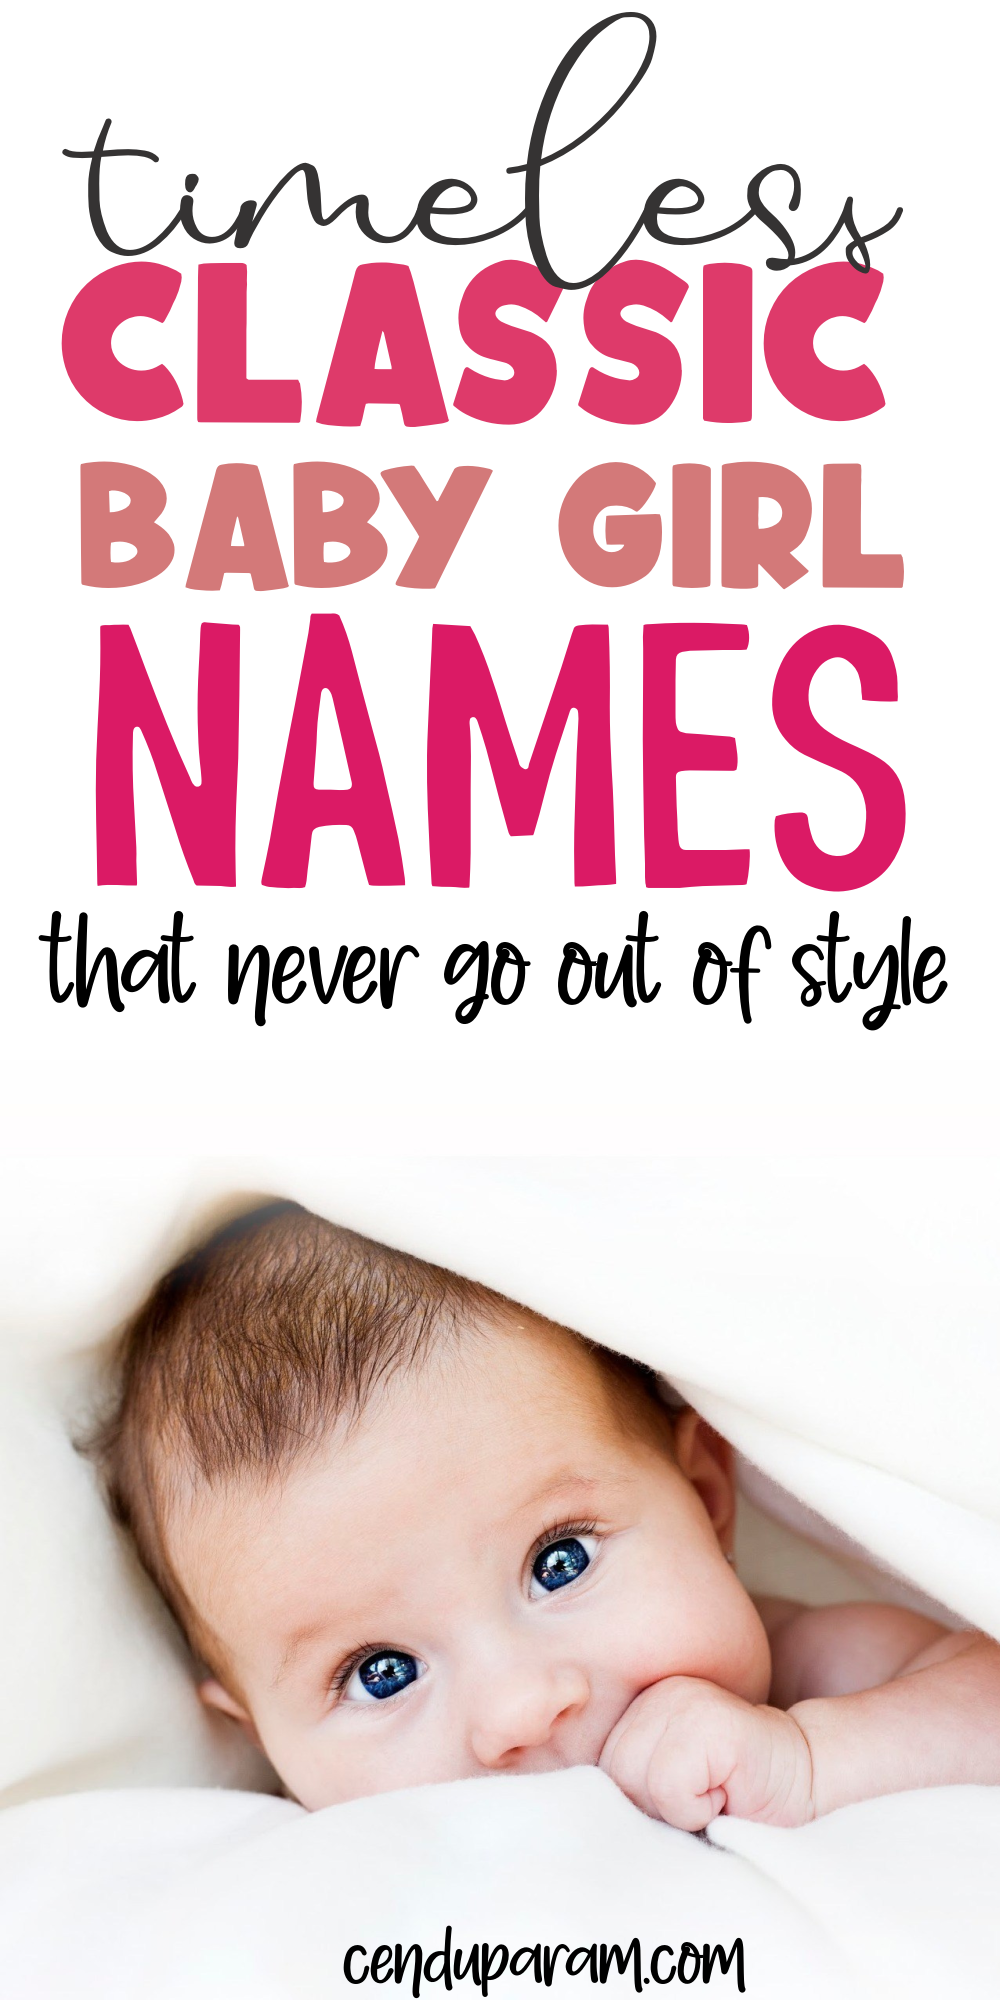 Classic Baby Girl Names with Vintage Charm (and meanings)